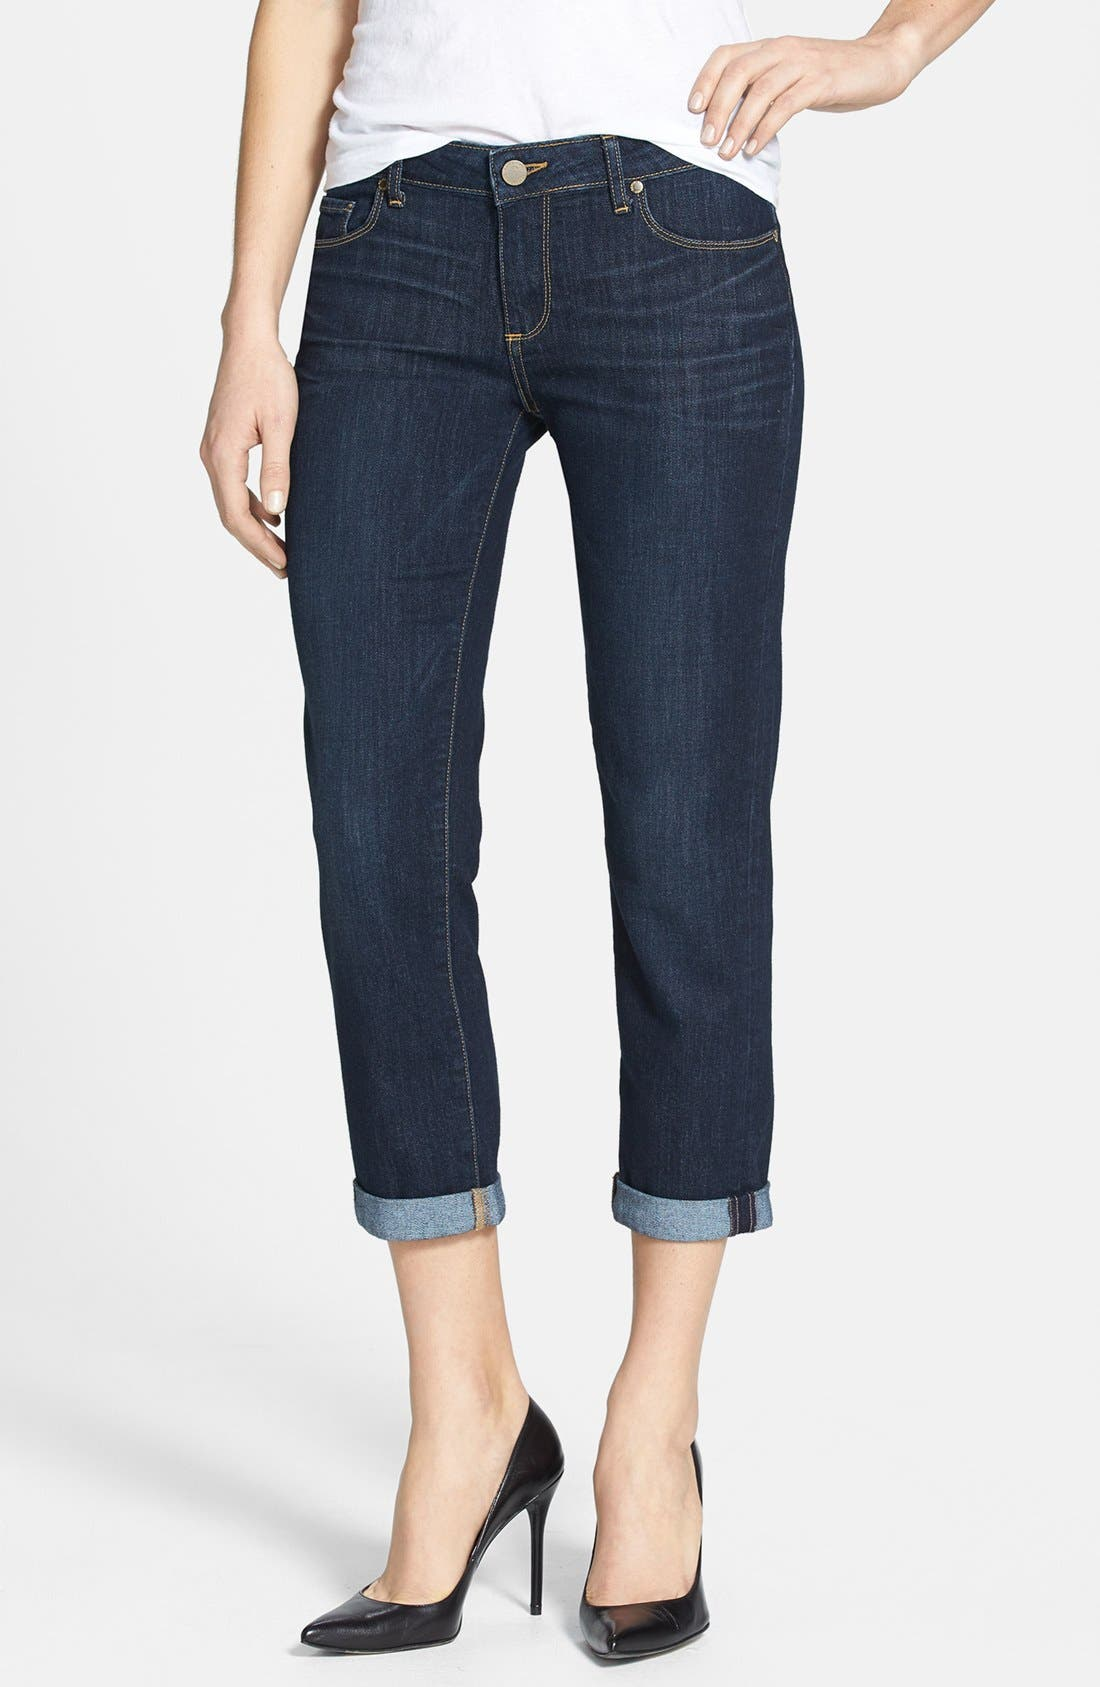 Main Image - Paige Denim 'Jimmy Jimmy' Crop Skinny Jeans (Highland)